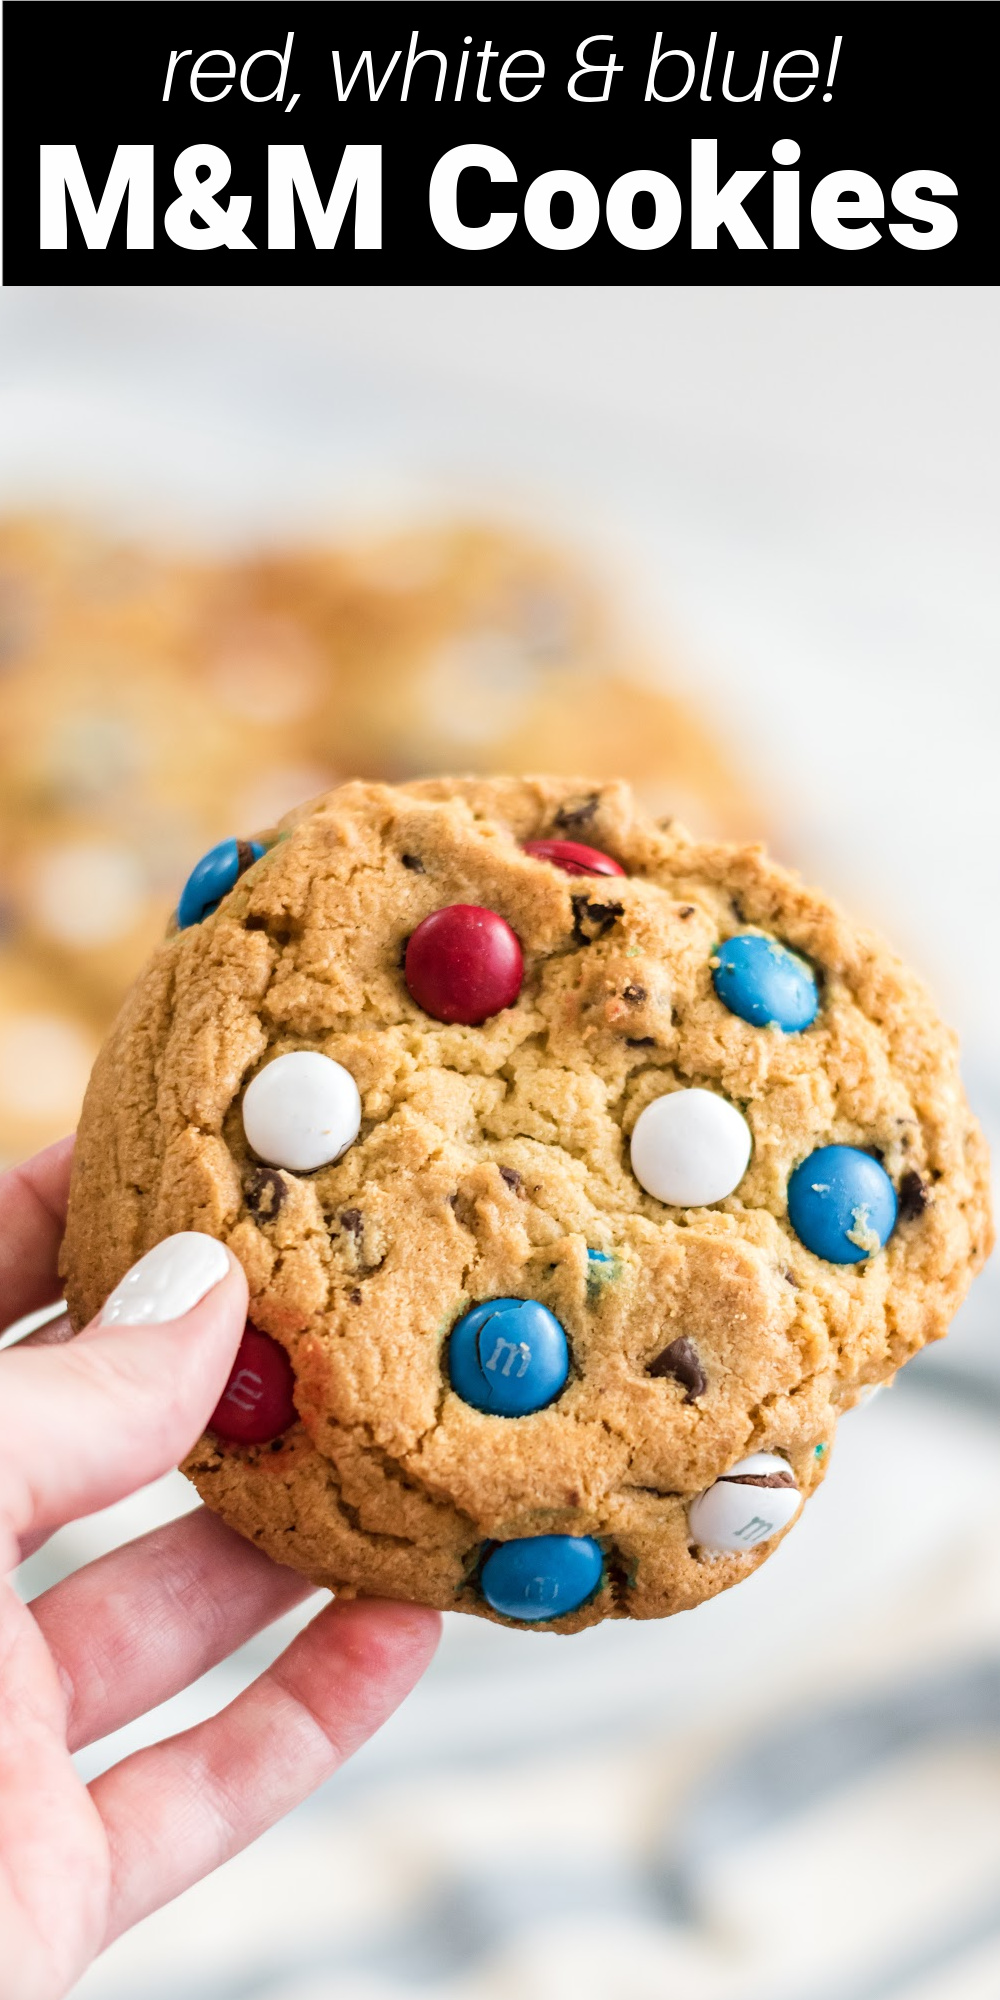 These patriotic chocolate chip cookies are perfect chocolate chip cookies for Memorial Day and the Fourth of July. They're packed with chocolate chips and red, white, and blue M&Ms to make the perfect patriotic dessert for your summer barbeque, potluck, or family gathering!